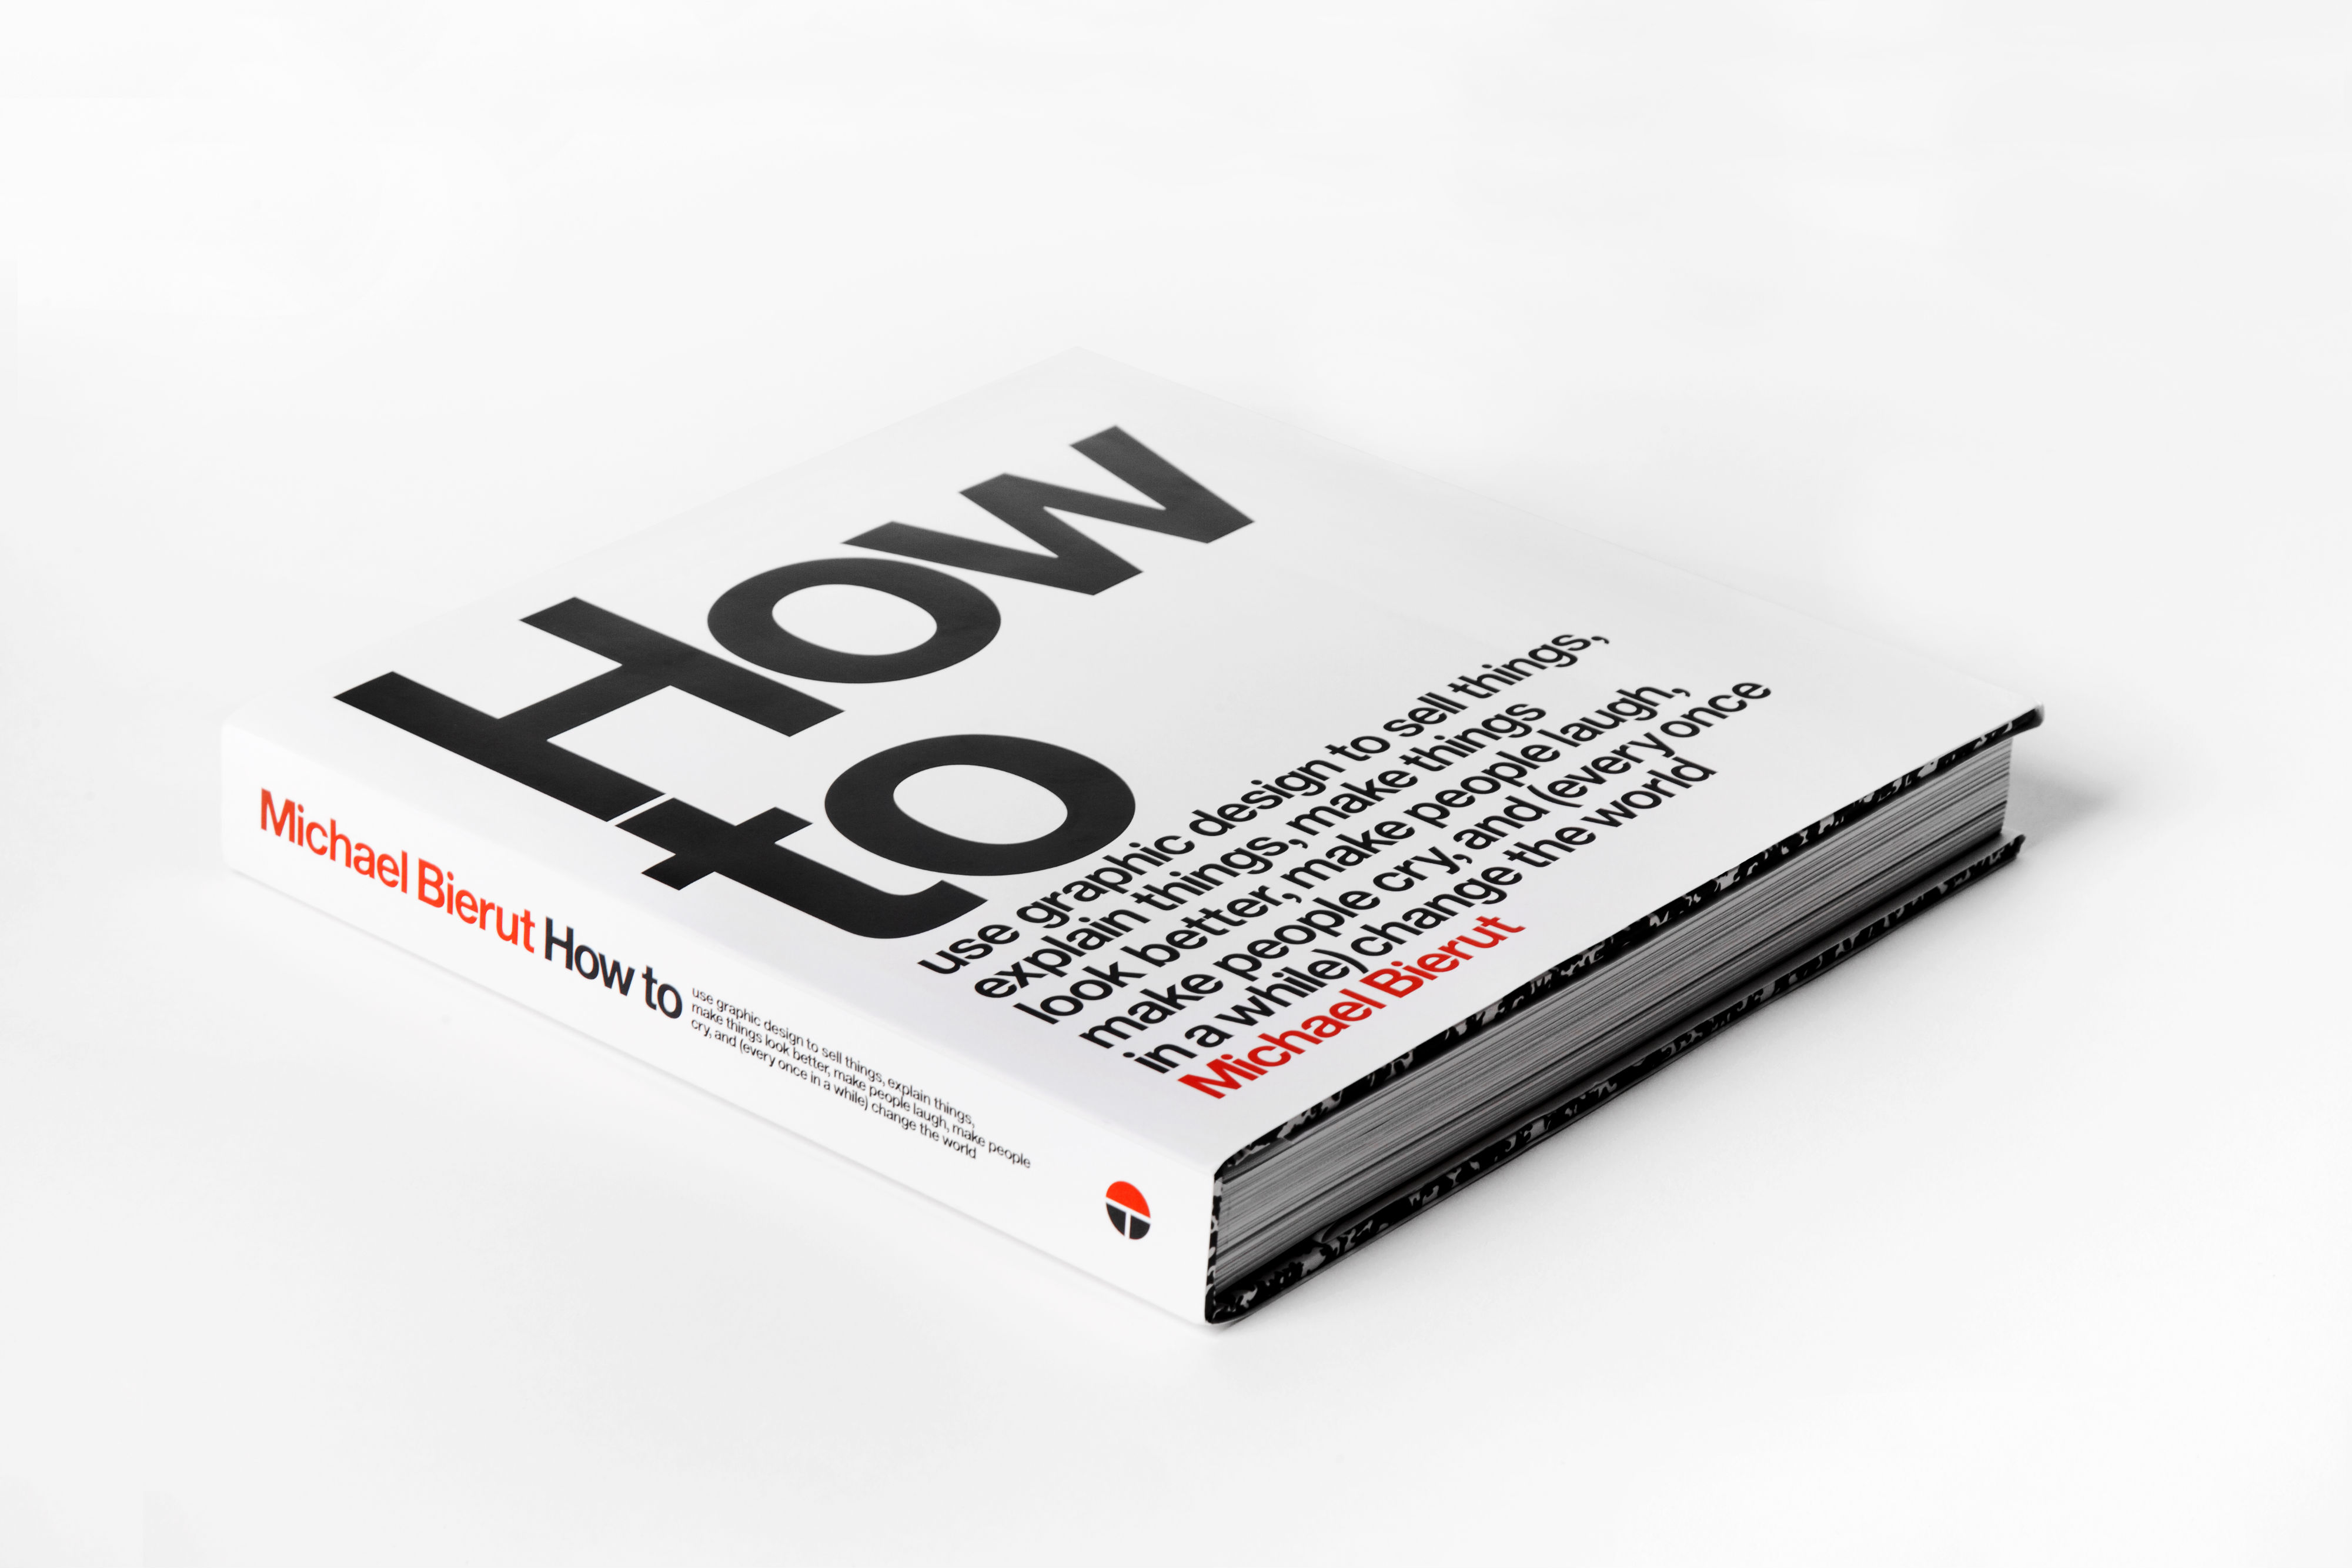 Michael Bierut's How To book